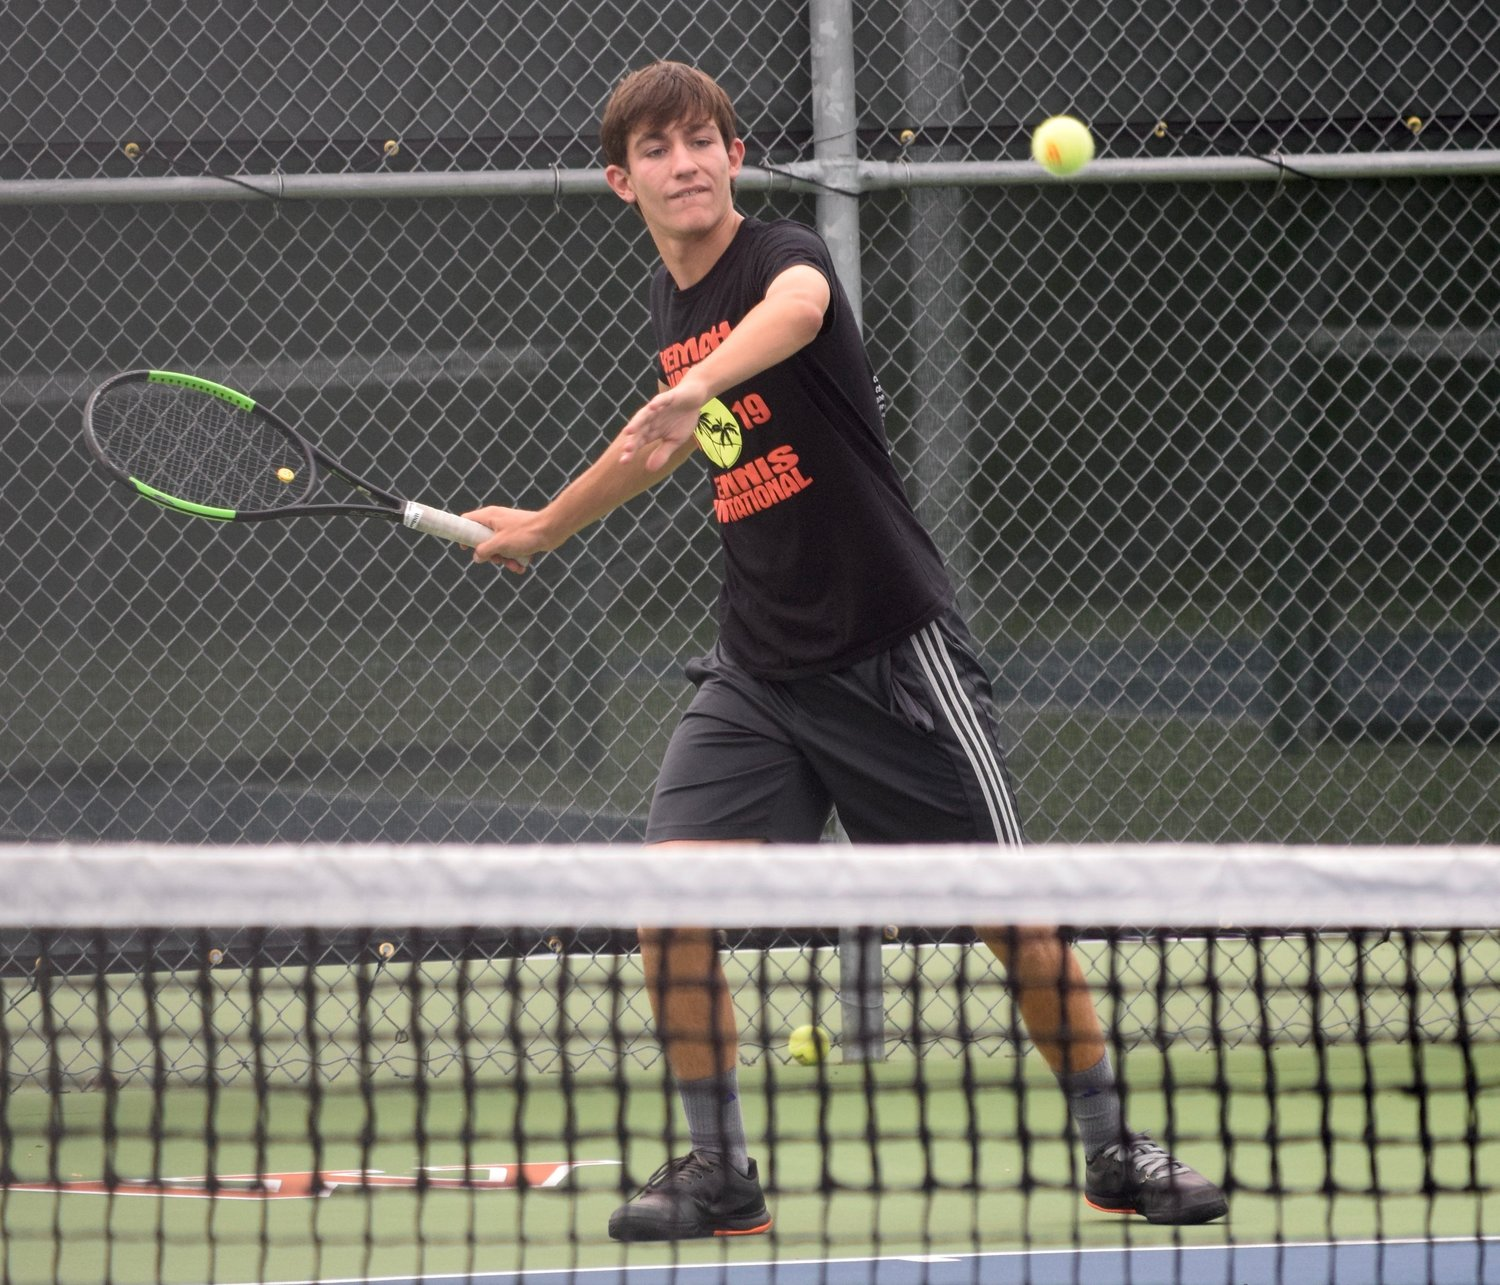 Westwood sophomore Daniel Antov will compete in the boys' singles tournament at the State Tennis Tournament this weekend in College Station.